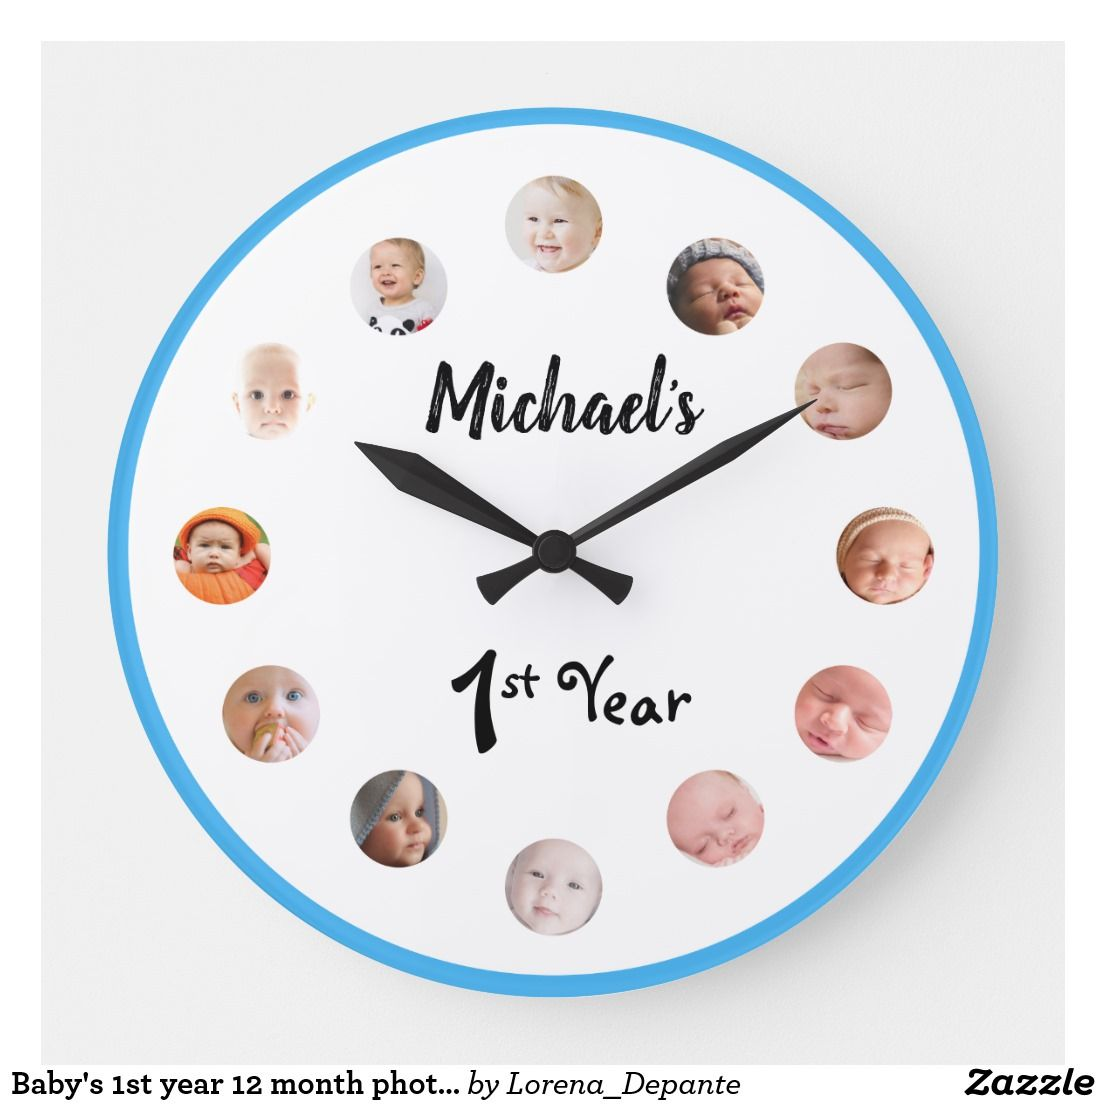 Baby S 1st Year 12 Month Photos Birthday Large Clock 1st Year Clock With For Baby S First 12 Mon Birthday Gifts For Girls 1 Year Birthday Baby Month By Month